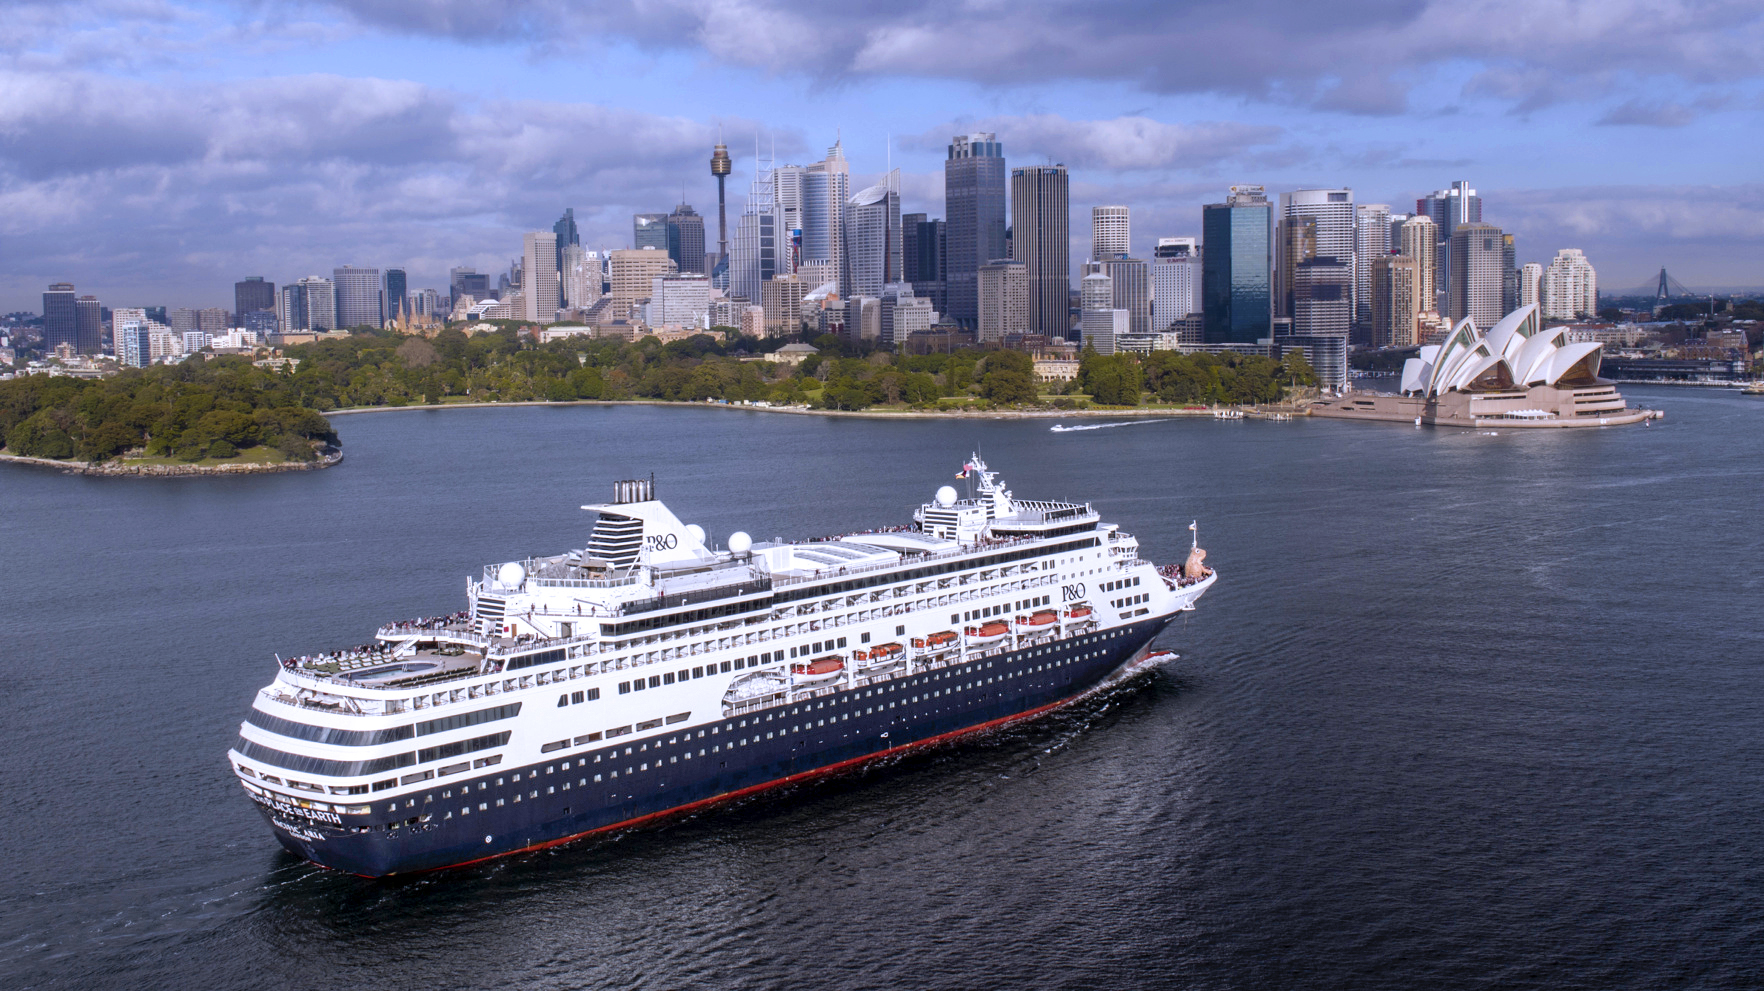 P&O Cruises Australia awards Yoghurt Digital its SEO account after a competitive pitch process